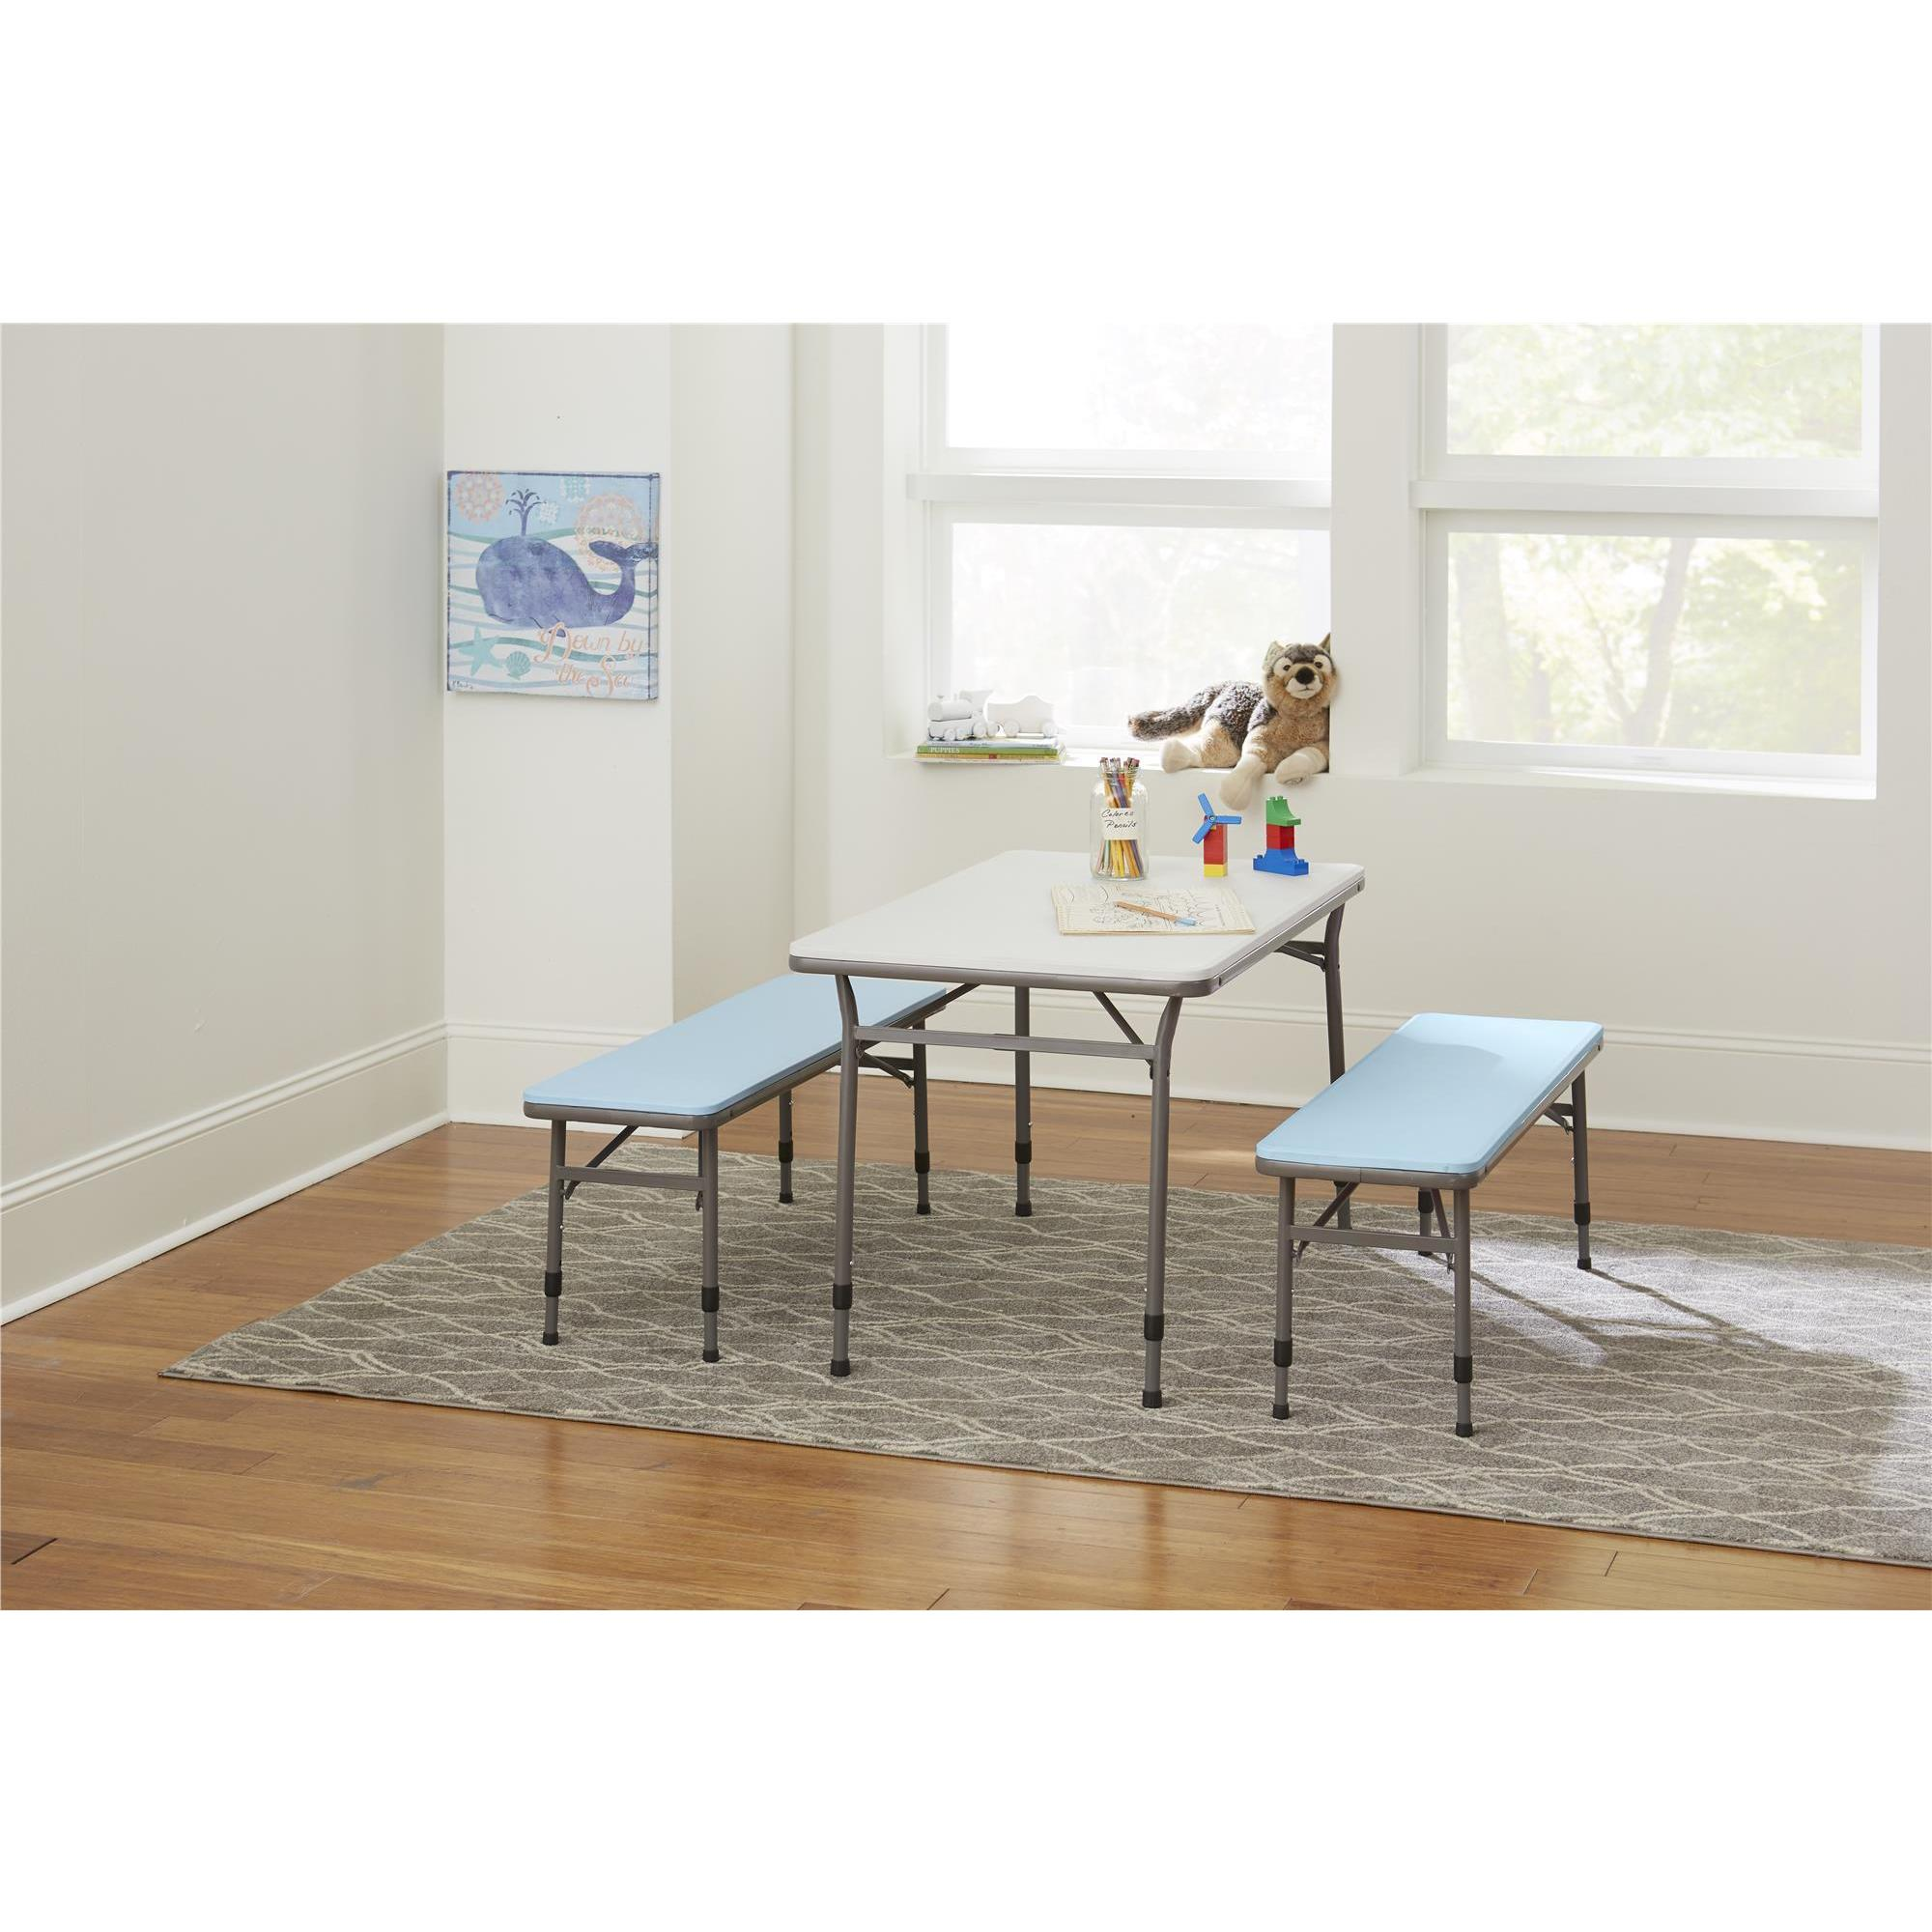 Cosco Blue Kids Adjustable Height 3pc Set, 2 Benches, 1 T...